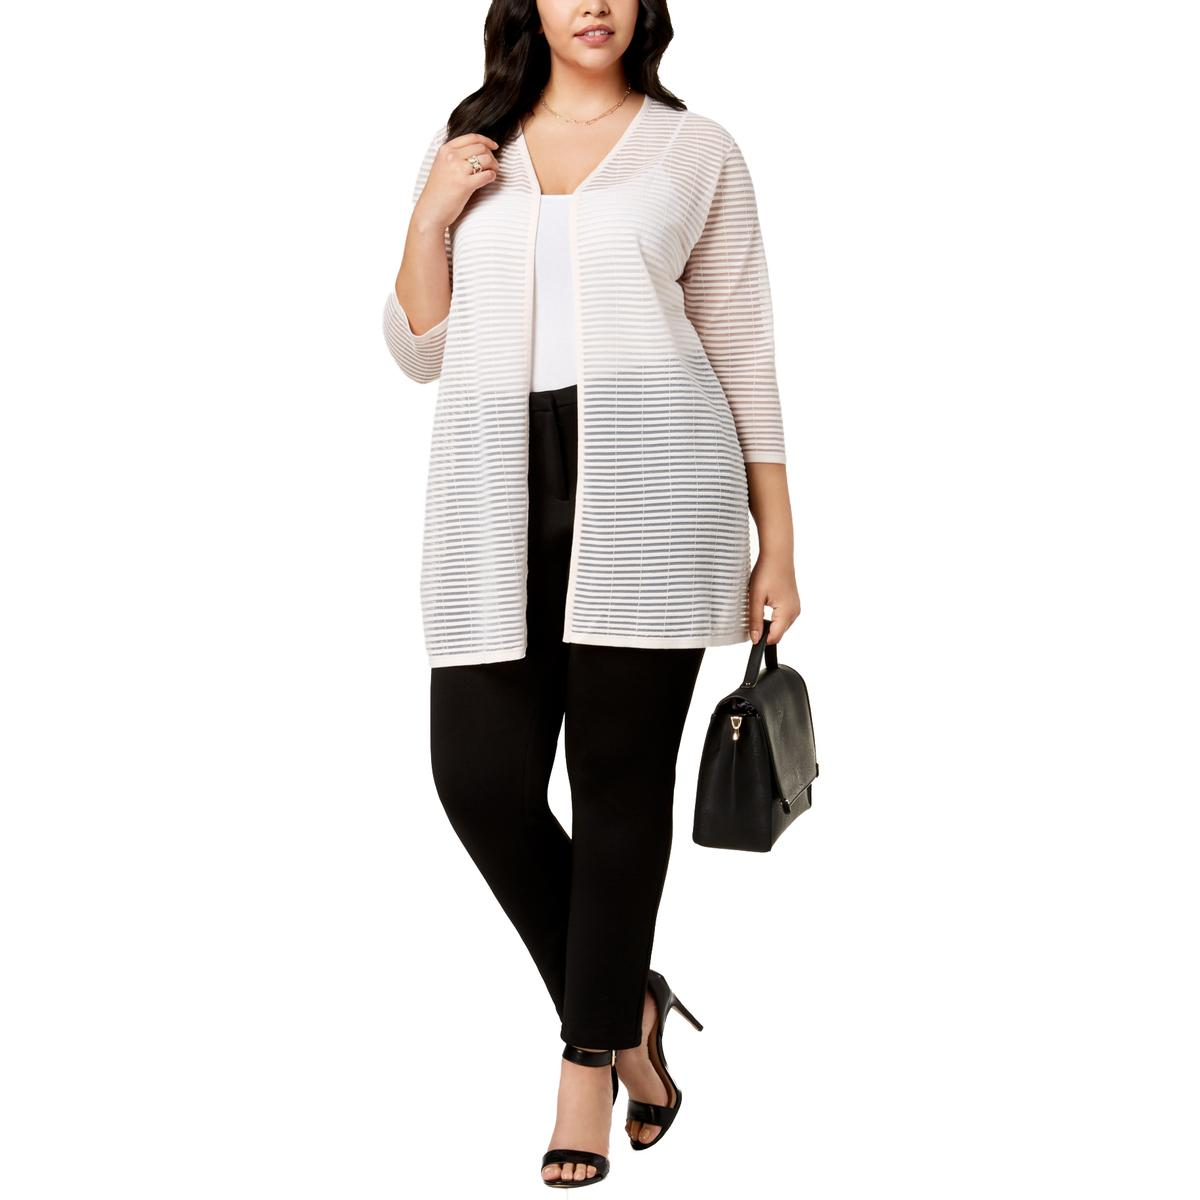 Details about Alfani Womens Sheer Striped Open Front Cardigan Top Jacket Plus BHFO 4407